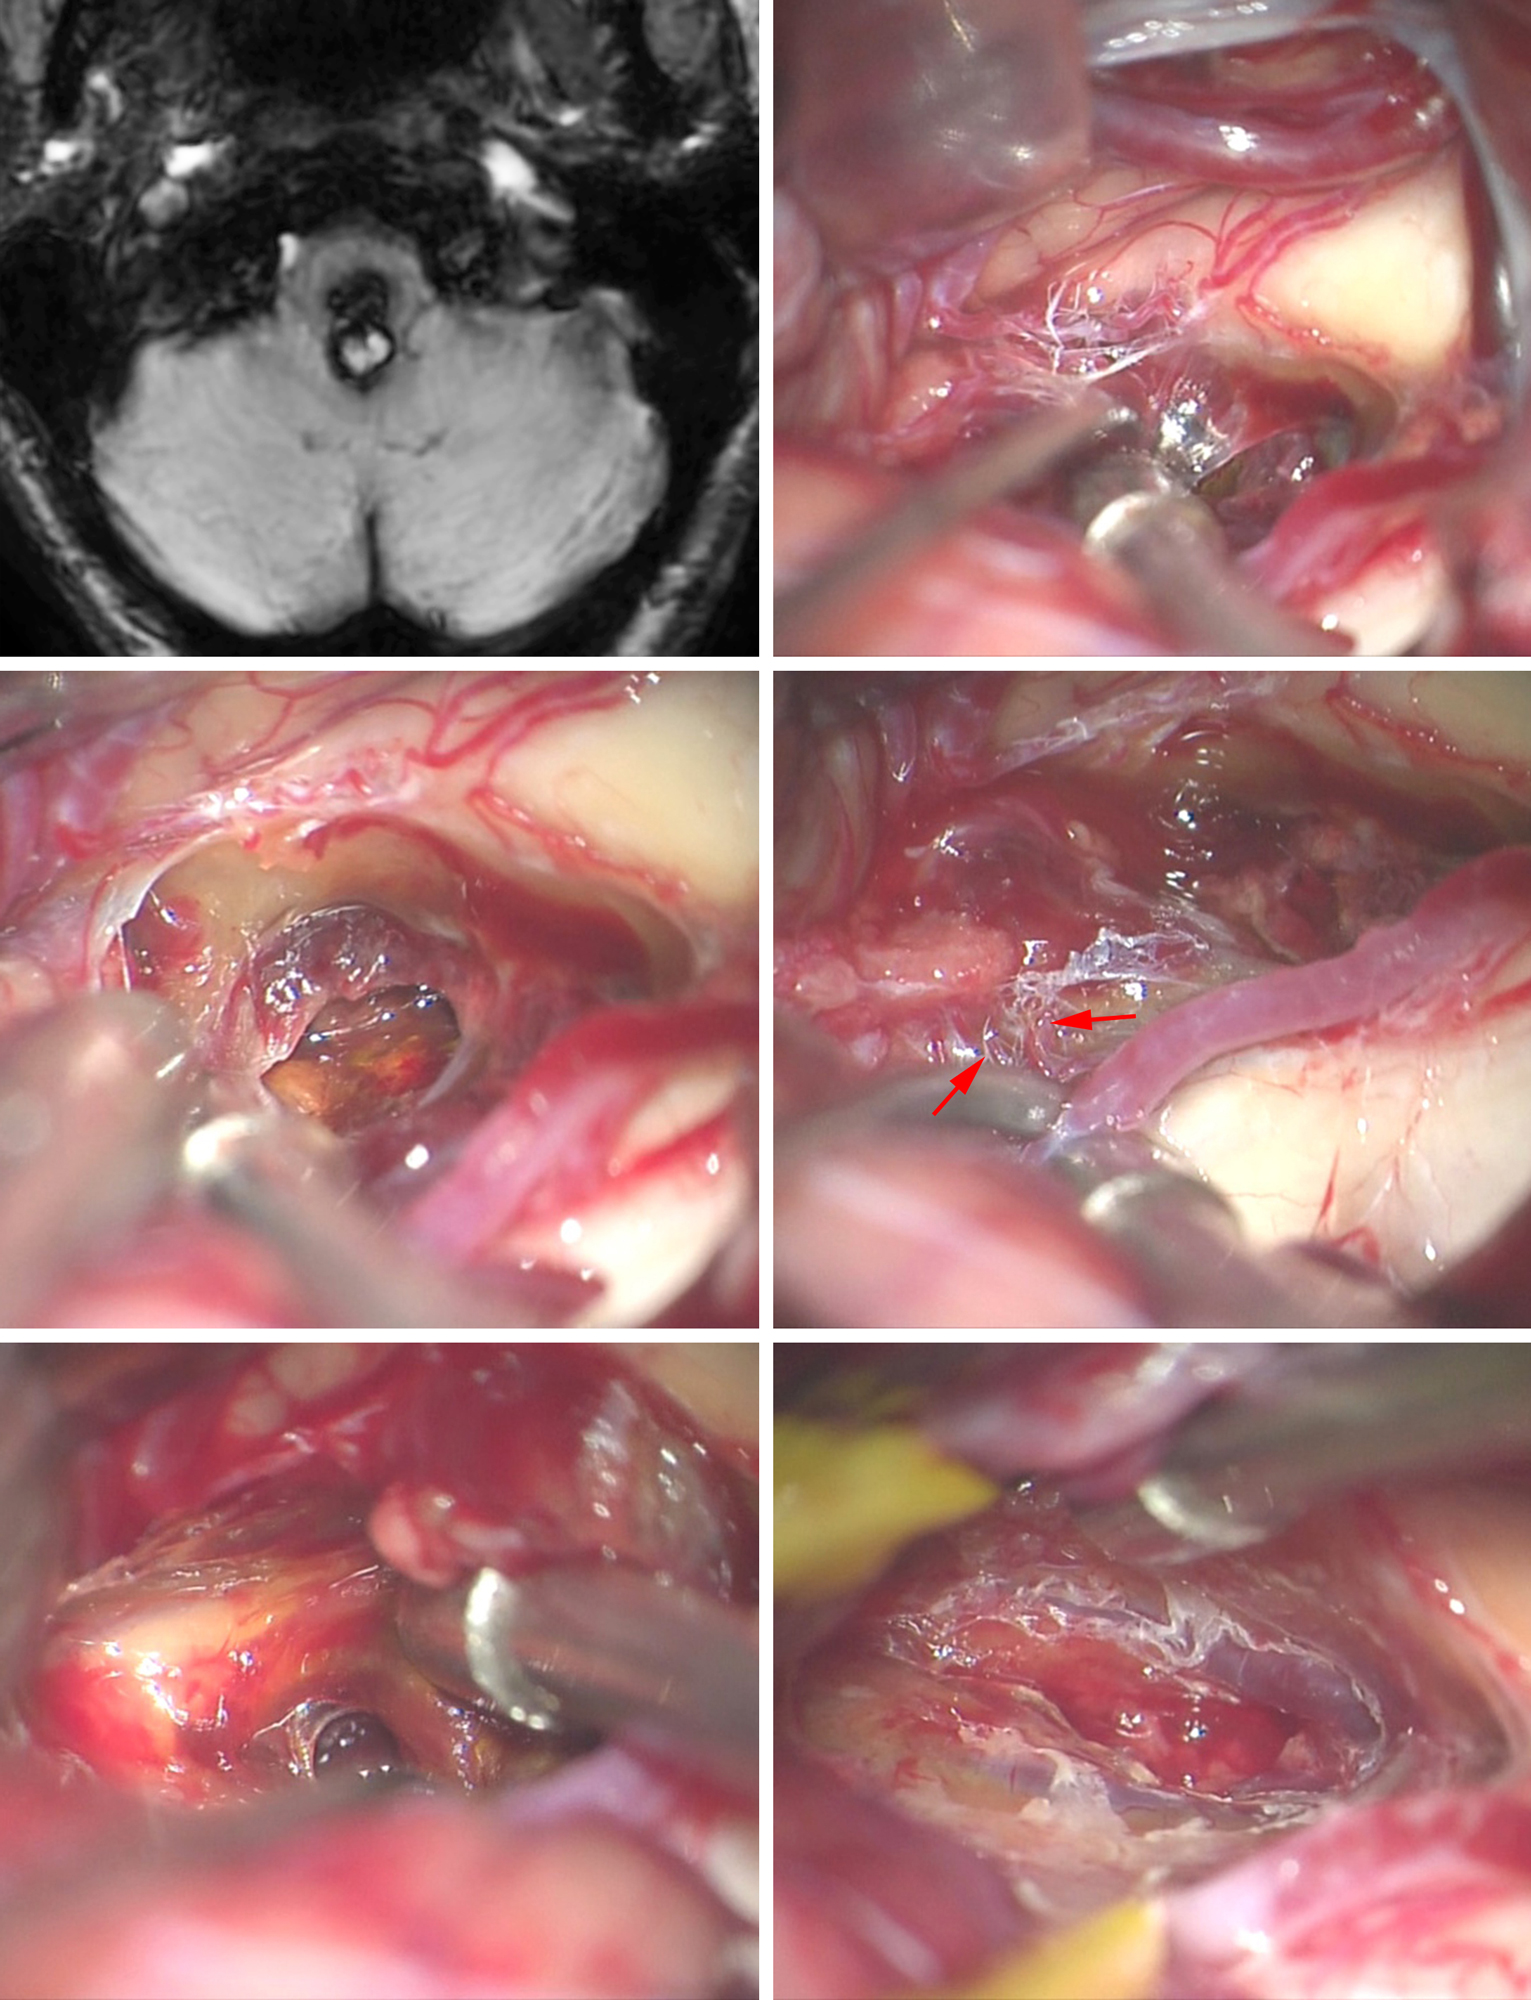 Figure 11: This posterior medullary CM was exposed by means of a suboccipital craniotomy, and the terminal feeding vessels to the CM were identified early (upper row of images). The hematoma within the CM was decompressed, exposing additional terminal feeders arising from the contralateral PICA (middle row, arrows). The CMs can be compartmentalized (left lower image), and therefore a thorough and judicial inspection of the resection cavity is essential for their gross total resection. The DVAs are evident on the walls of the cavity (right lower image).